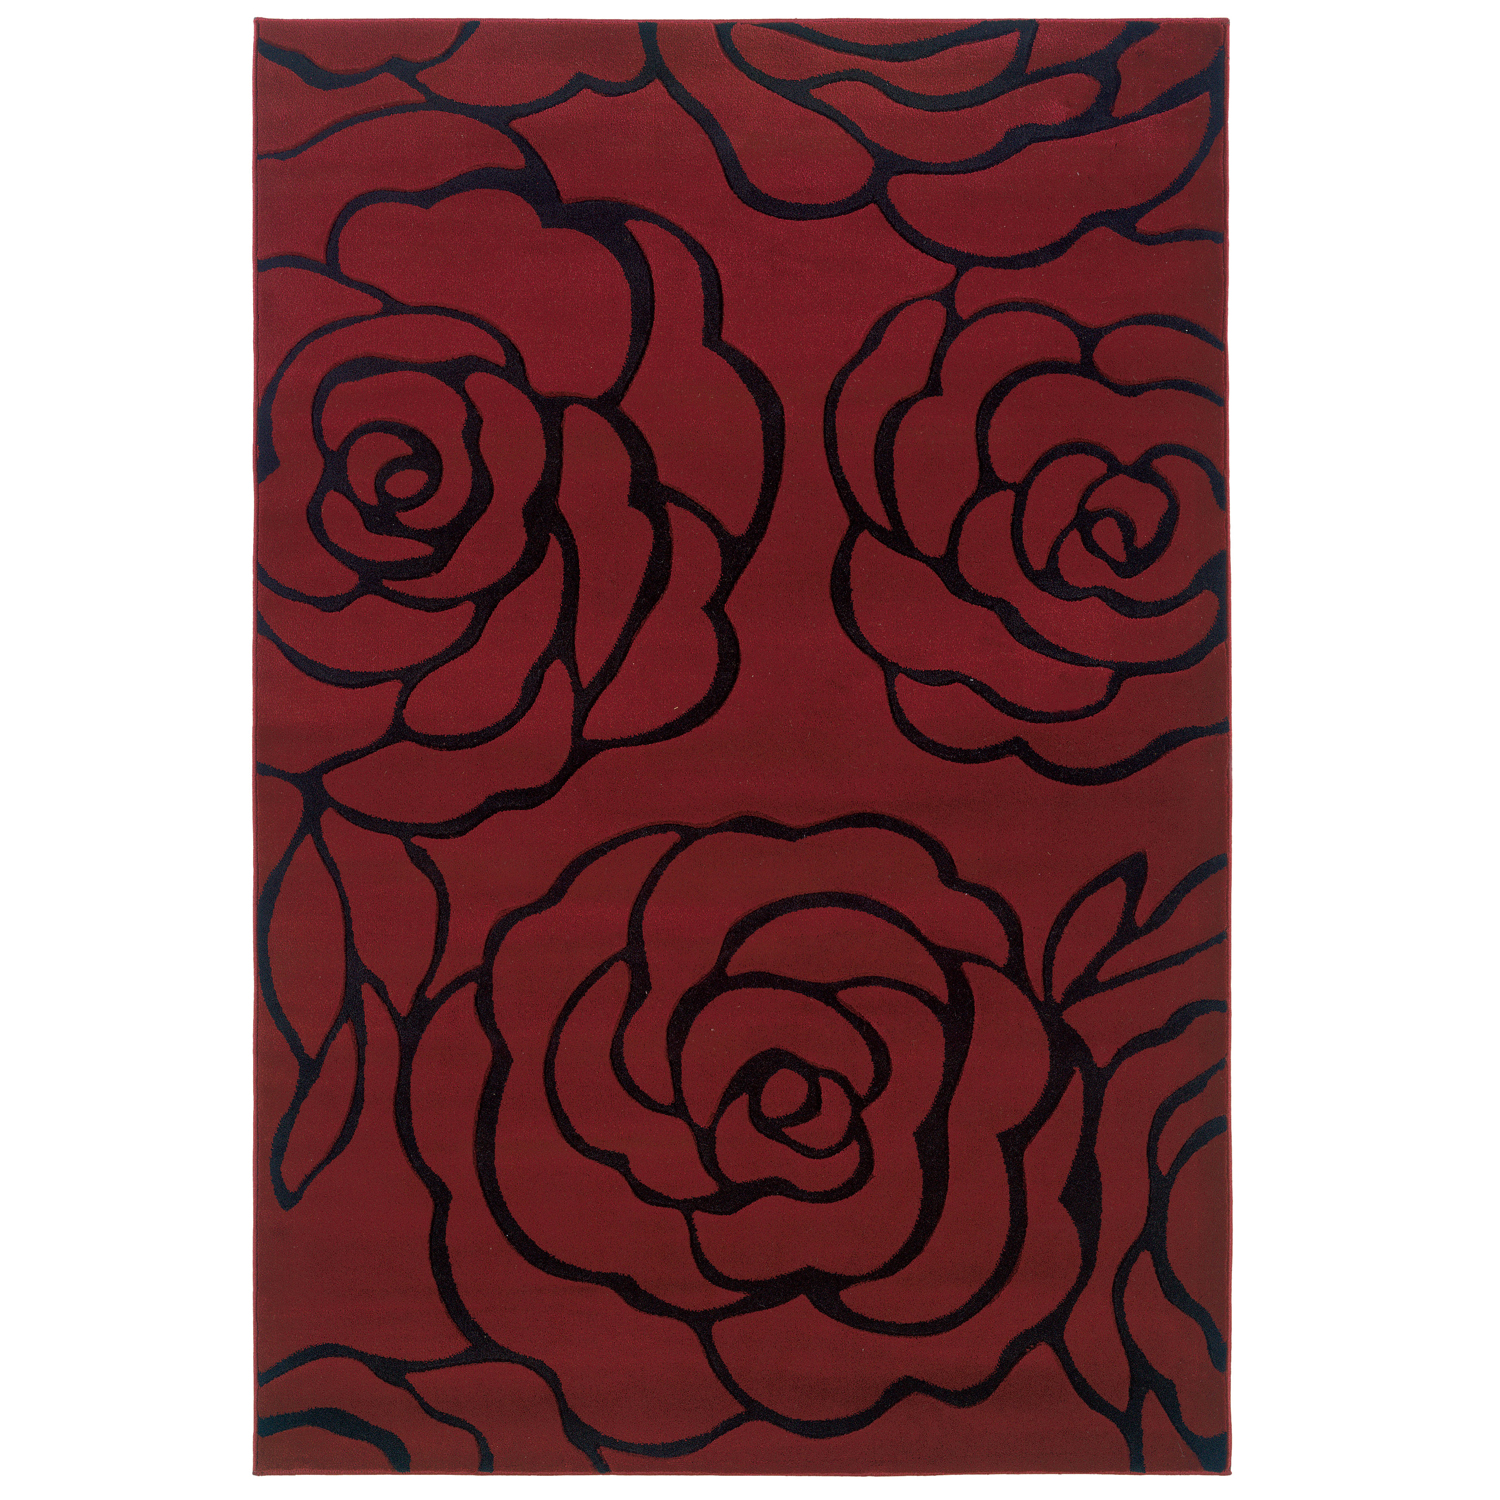 Milan Red/Black 2'X3' Area Rug, RED BLACK